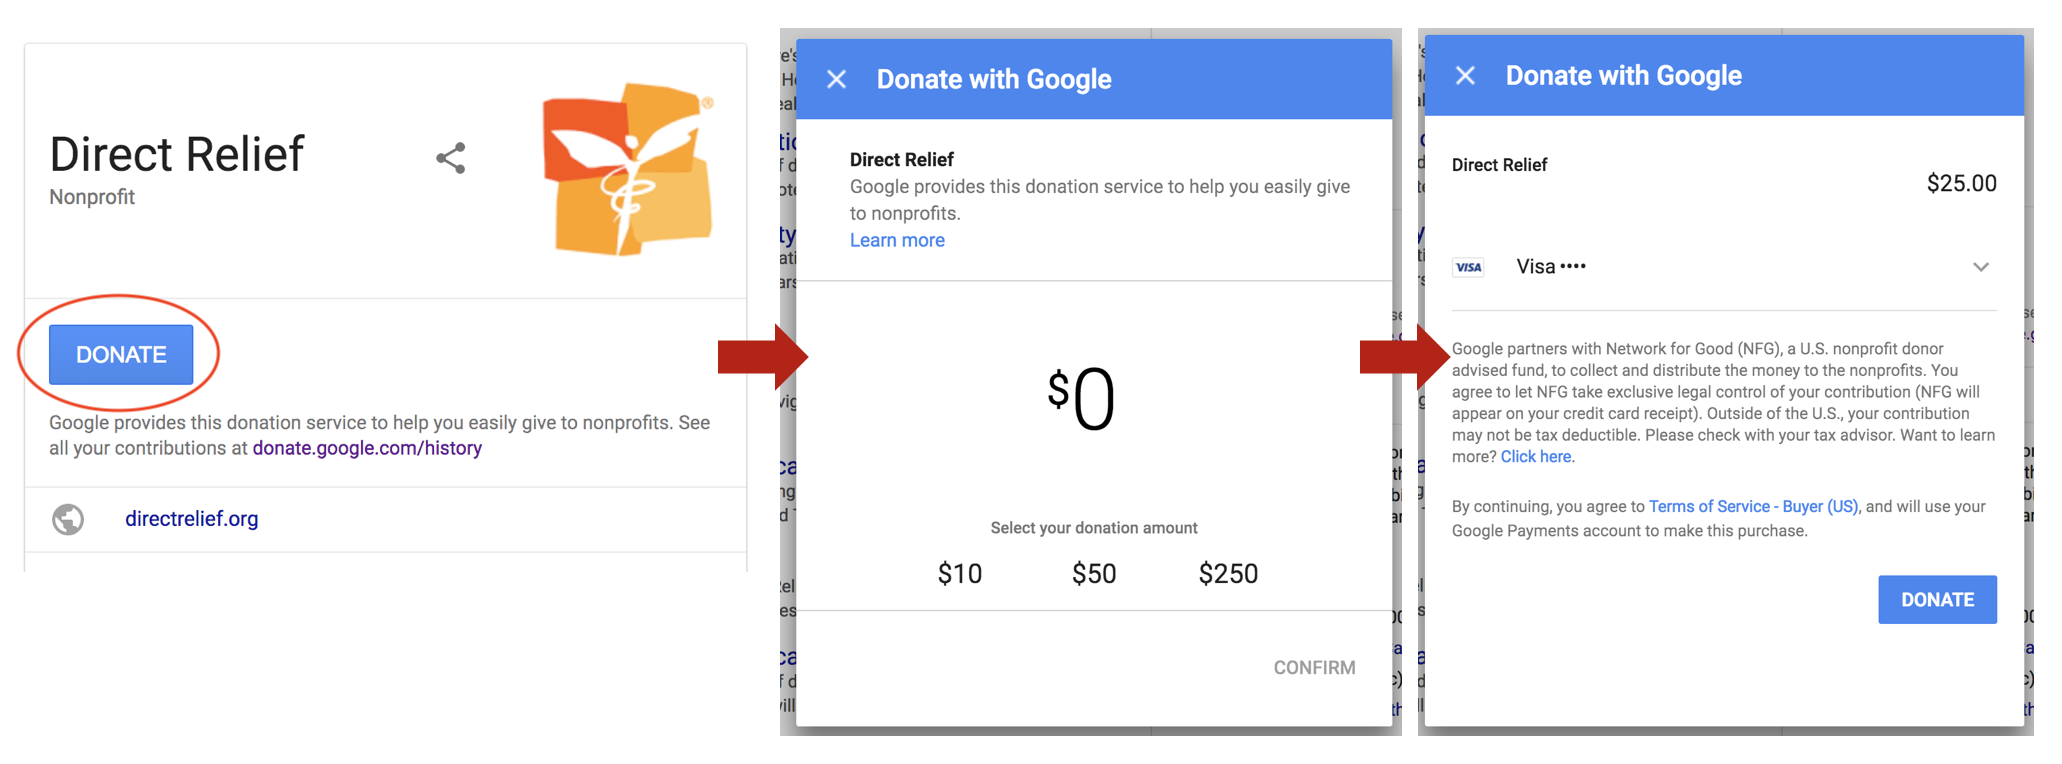 How To Donate Online Using Google Search Engine Results Page Donate Button | CenterTable Digital Agency